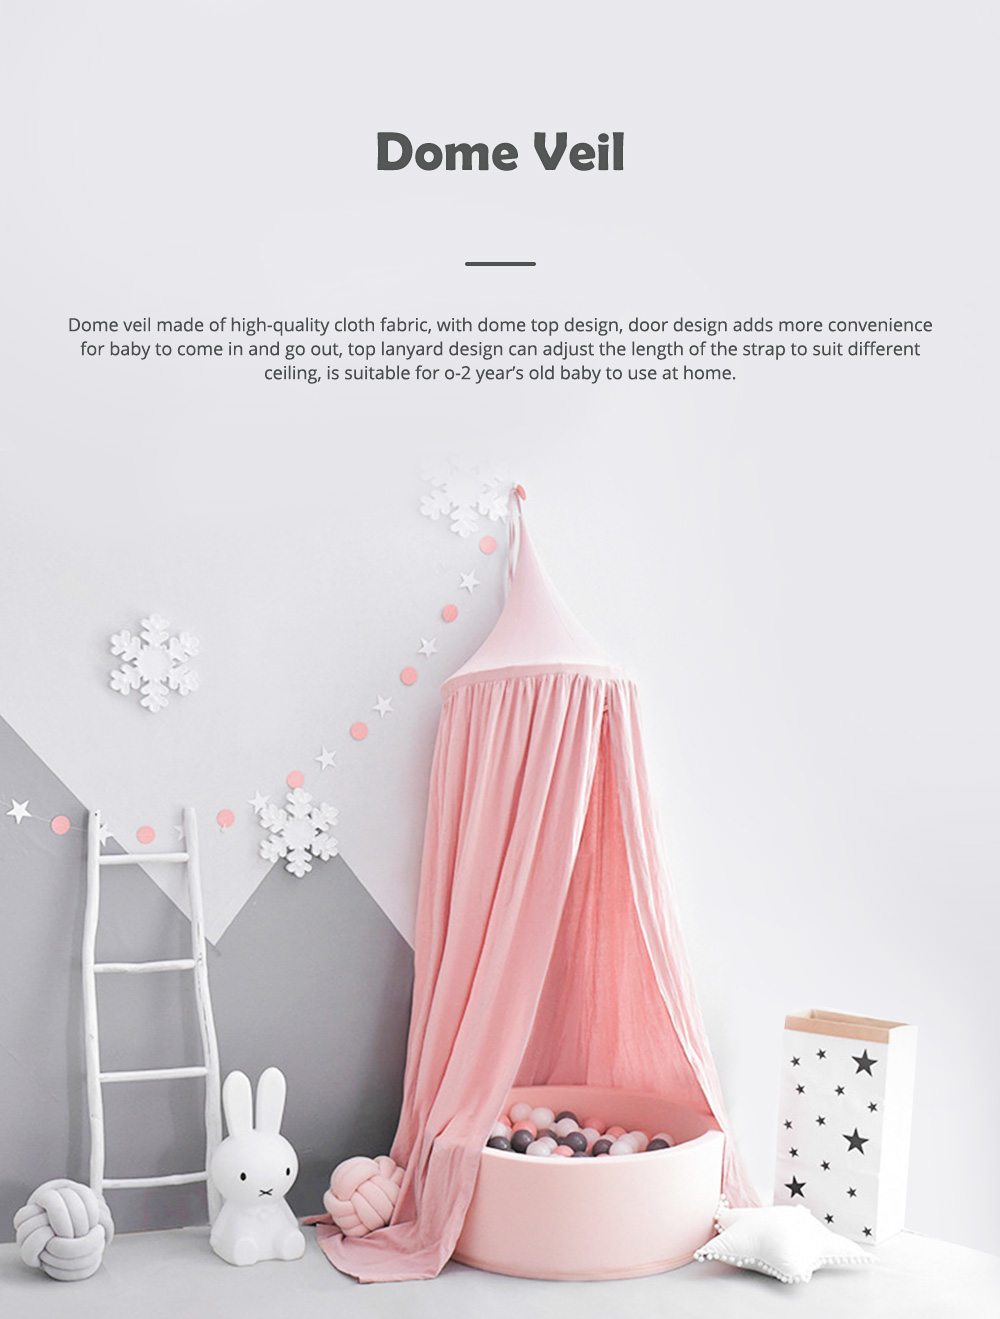 Lovely Cloth Play House Dome Veil for 0-2 Year's Old Baby Classic Color Top Lanyard Children's Tent 0